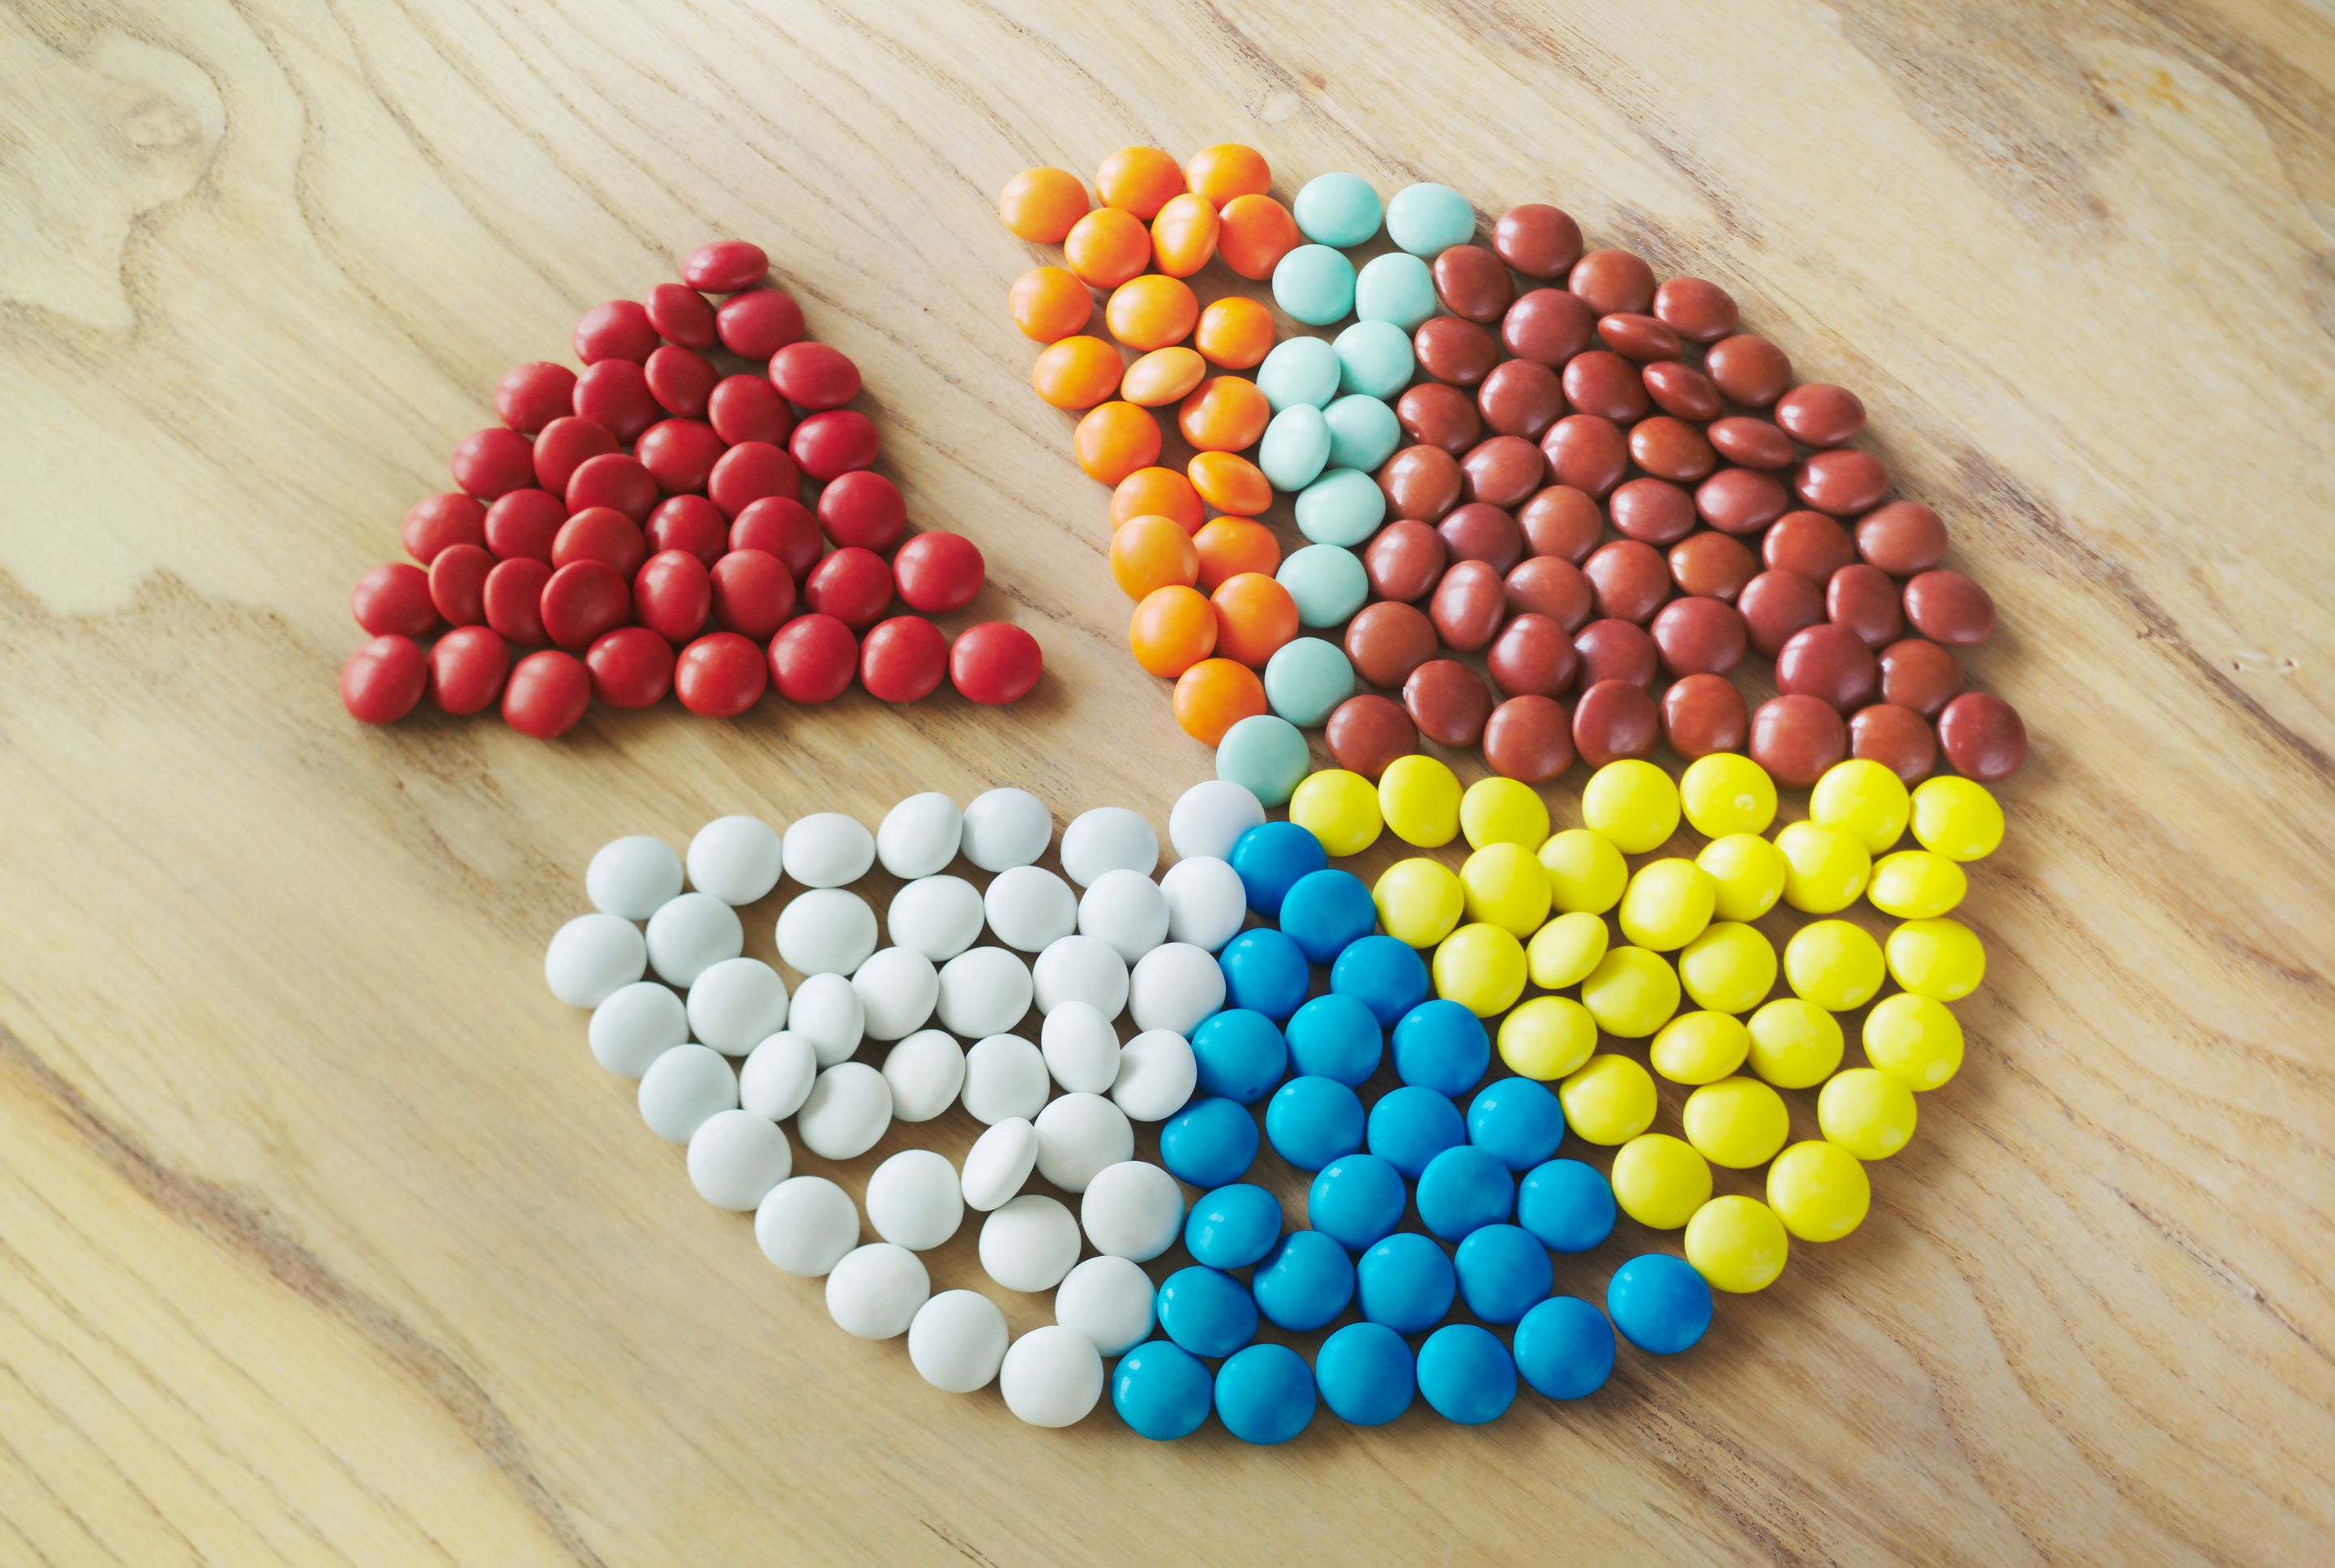 Pie graph made of different colored candies